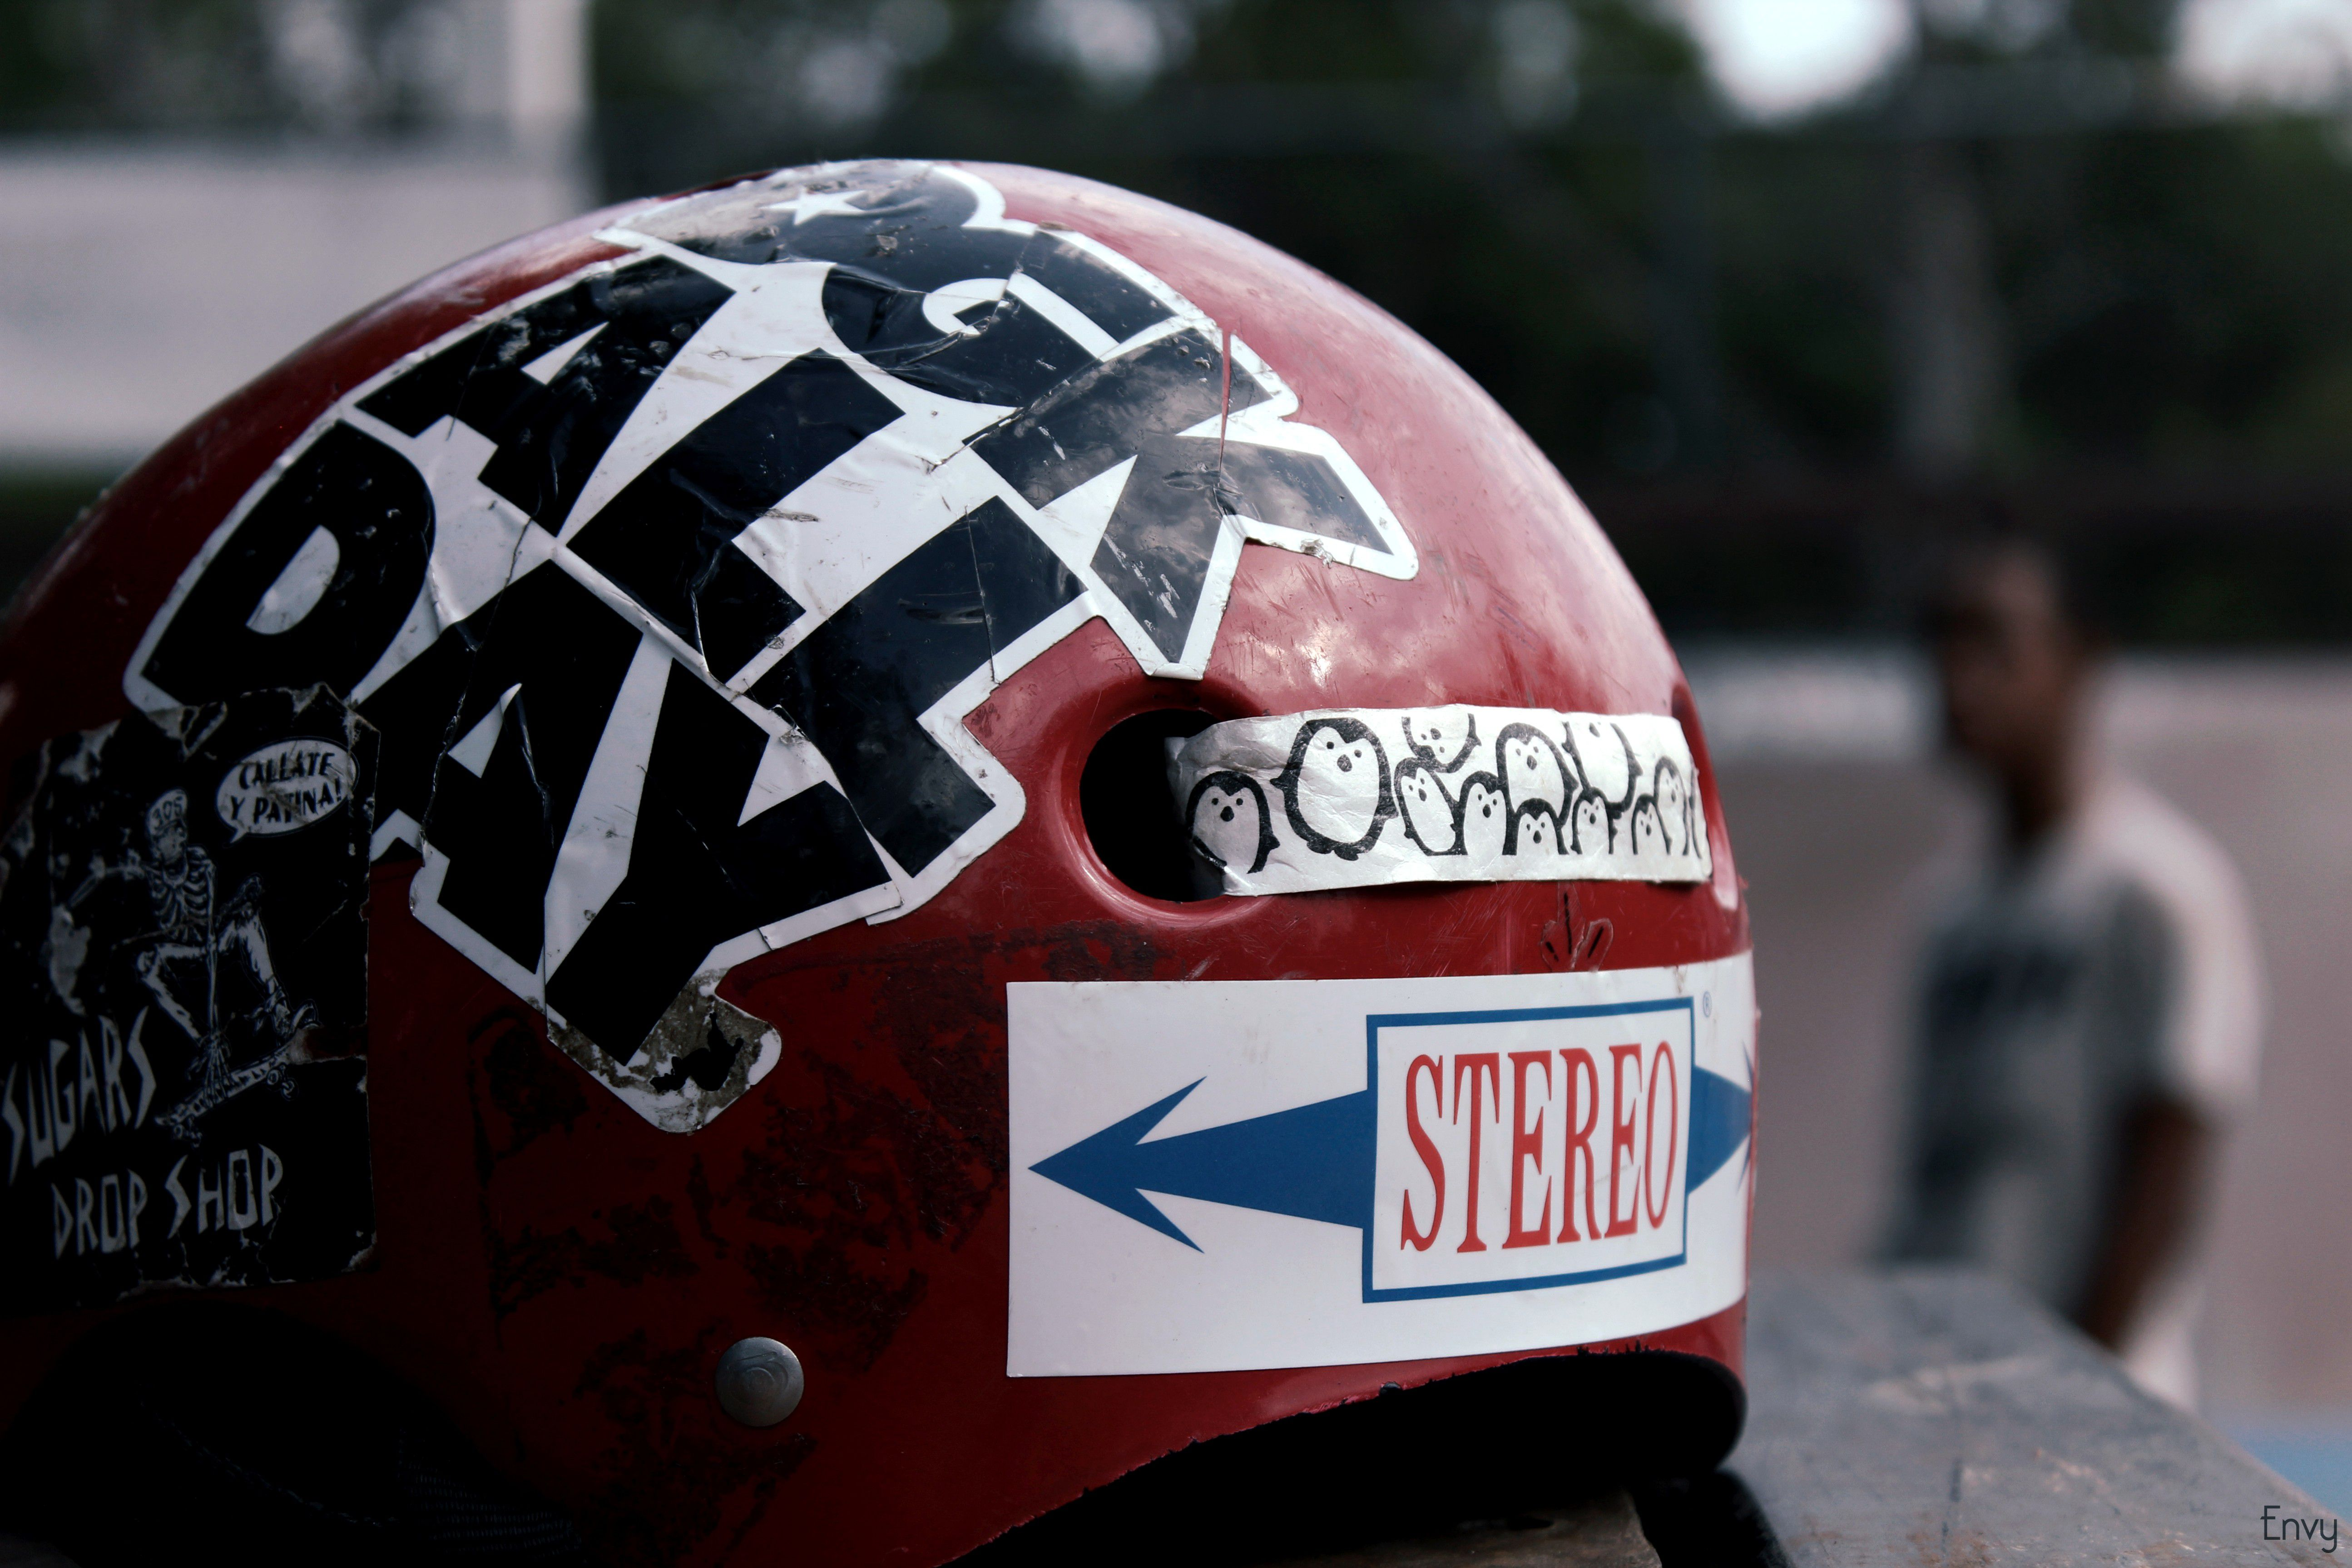 A beat up, red skateboarding helmet covered in stickers